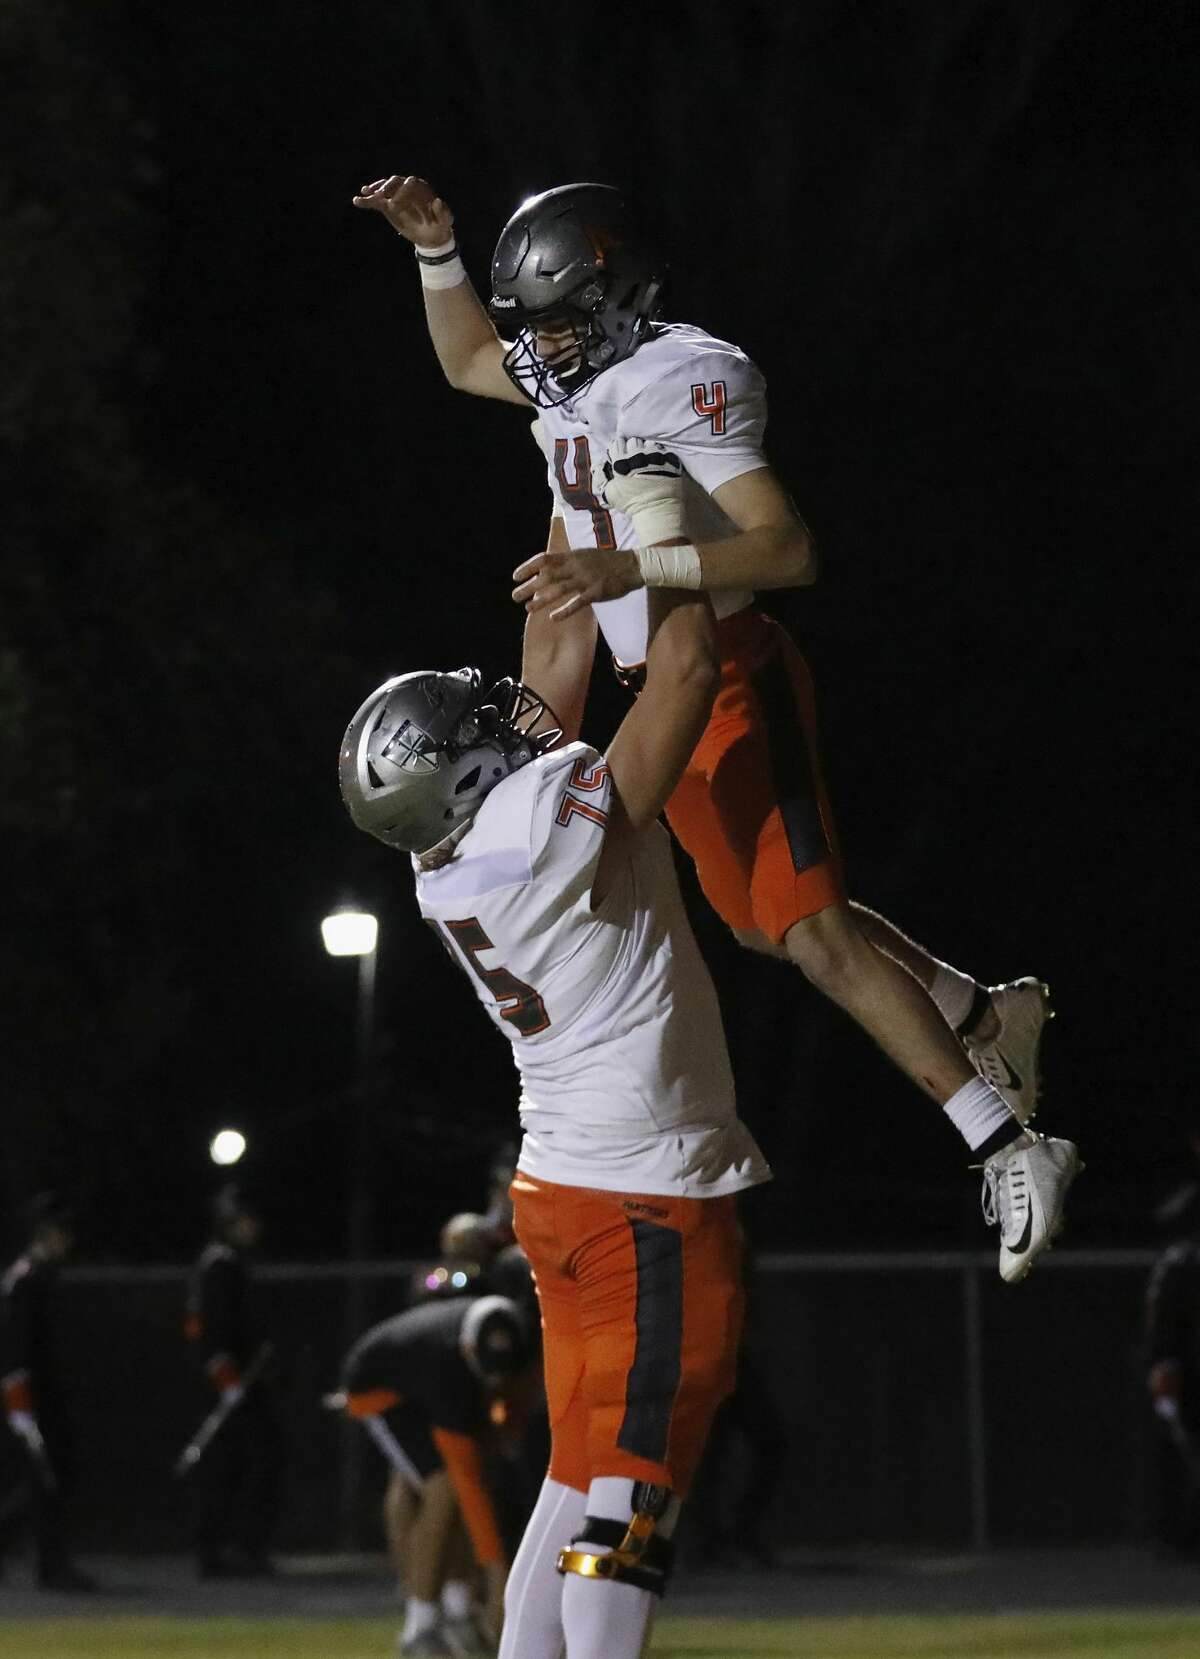 St. Pius X Panthers Tyler Vrabel (75) celebrates with St. Pius X Panthers wide receiver Ramon Vitulli (4) after a touchdown in the first half during the high school football game between St. Pius X Panthers and the Concordia Lutheran Crusaders in Tomball, TX on Friday, October 27, 2017.